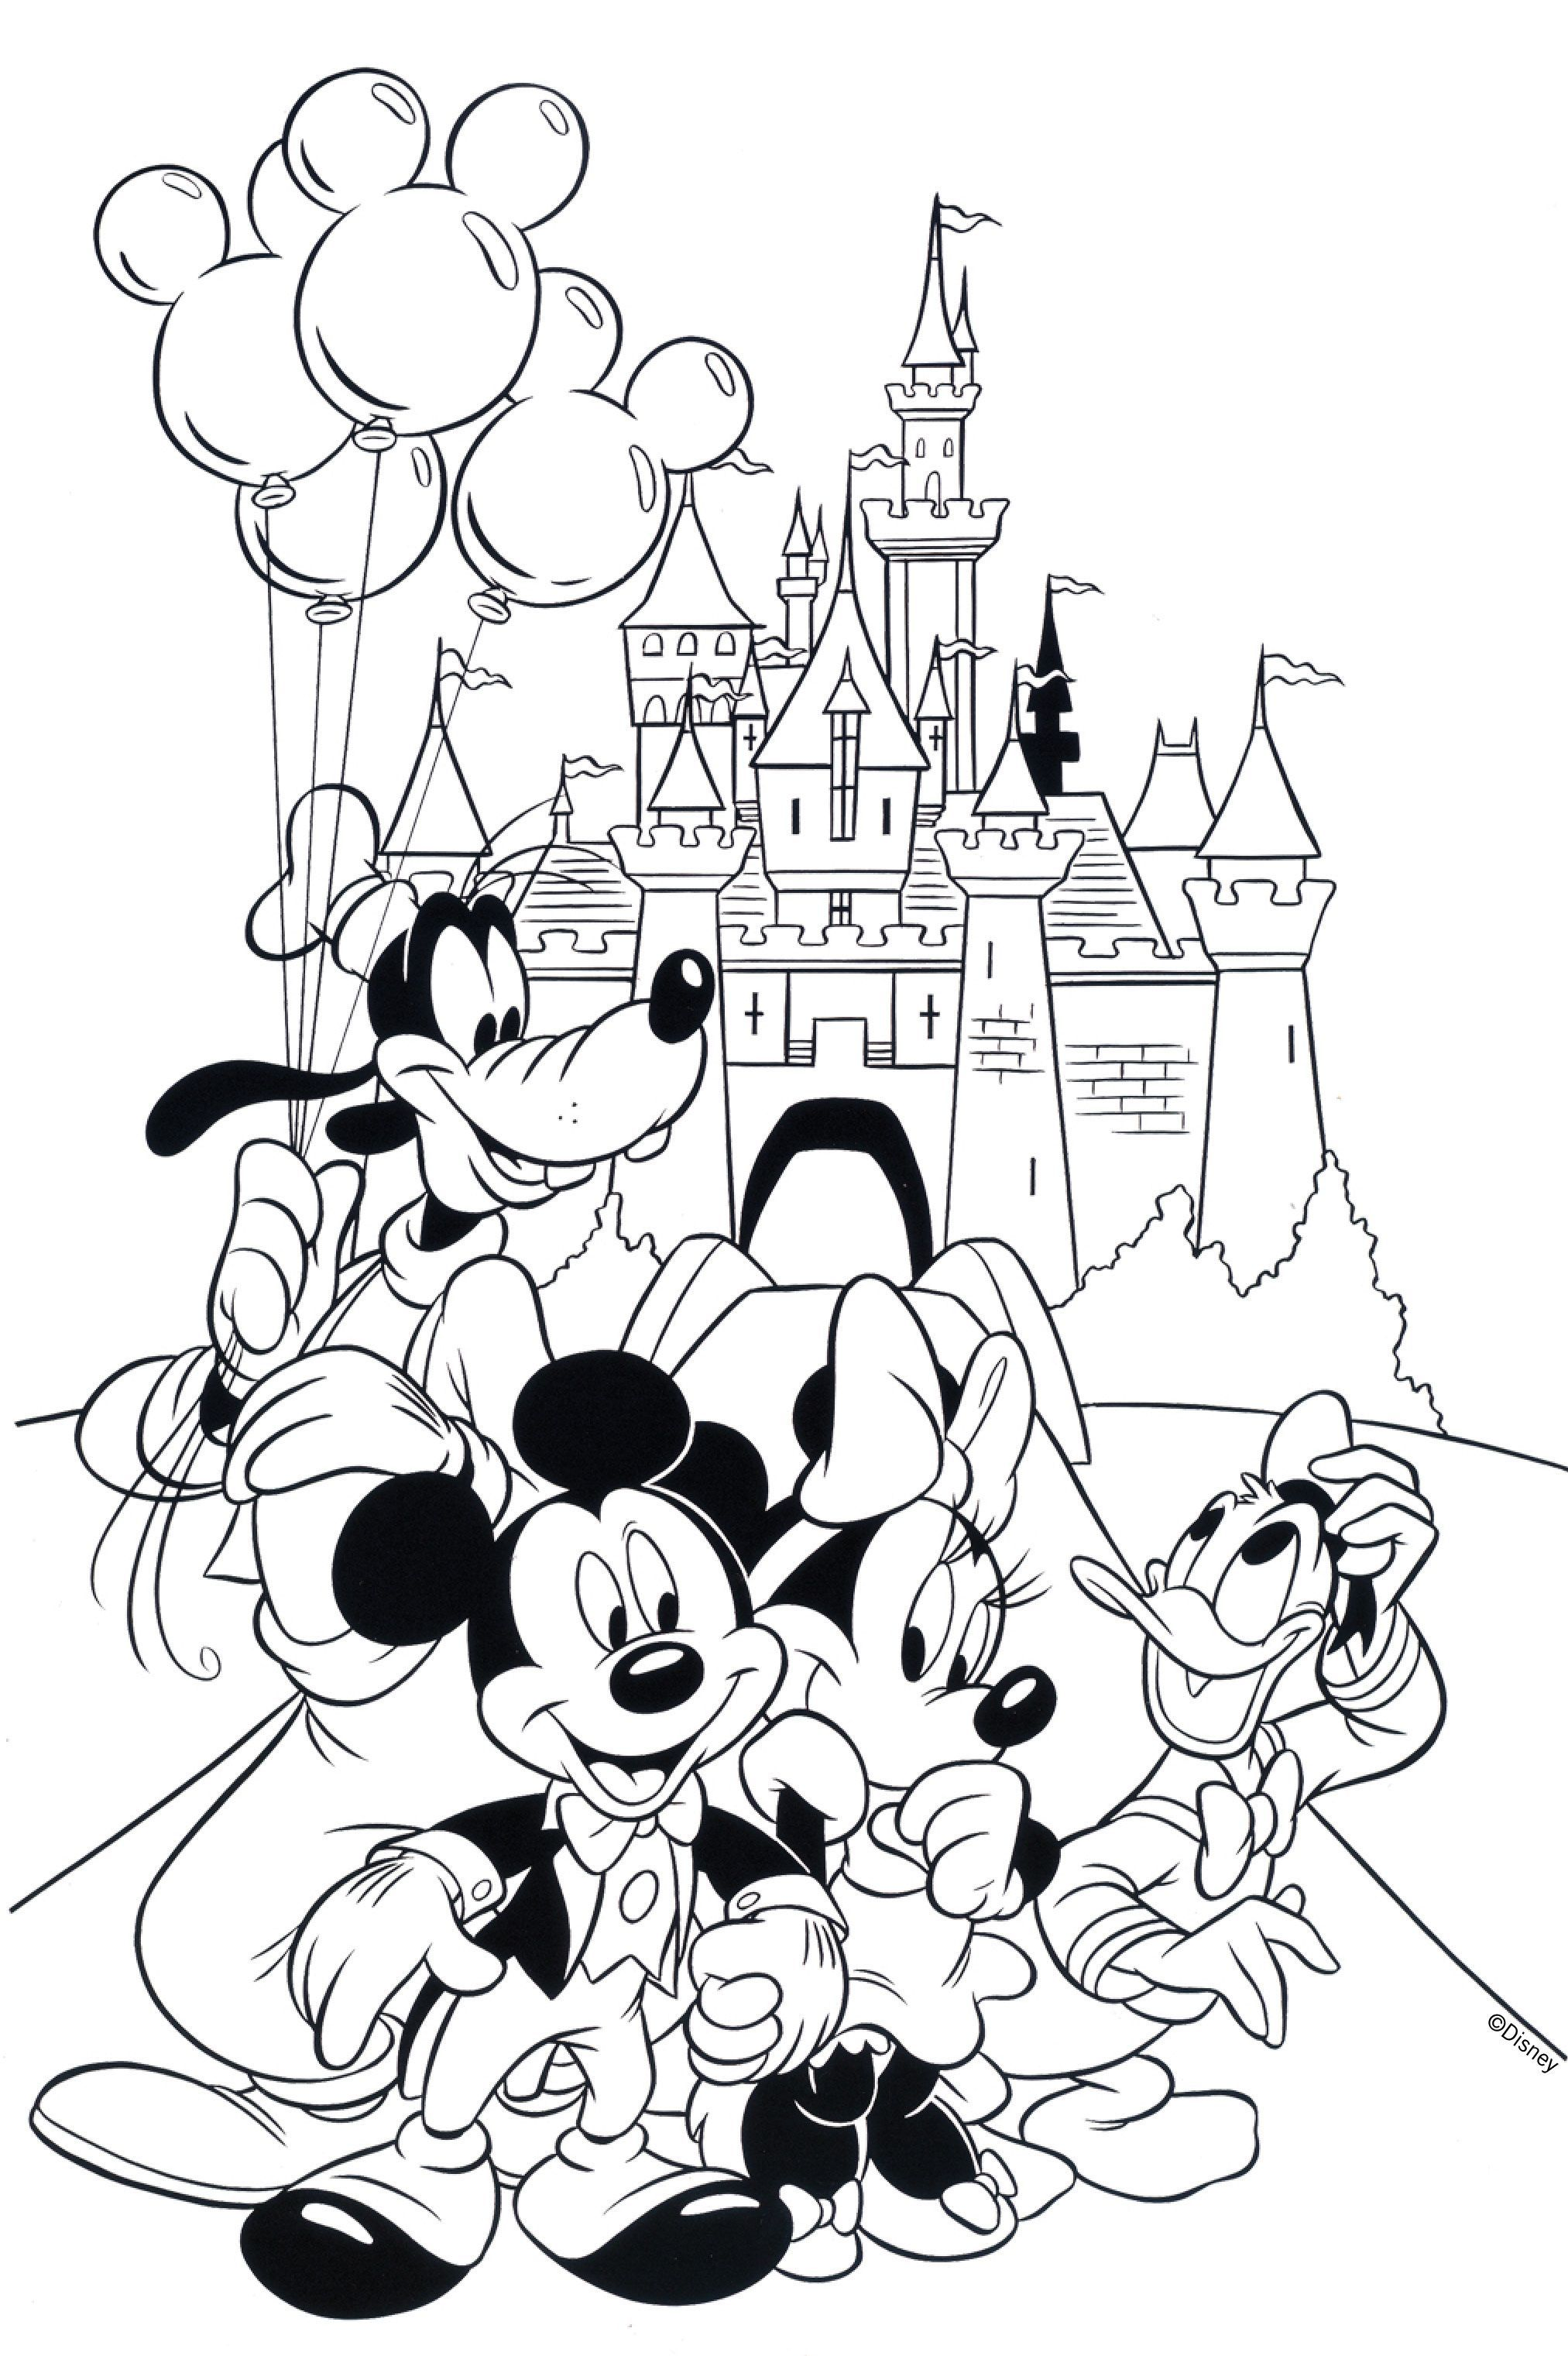 Www Disney Coloring Pages Com In 2020 Disney Coloring Pages Disney Coloring Sheets Mickey Mouse Coloring Pages